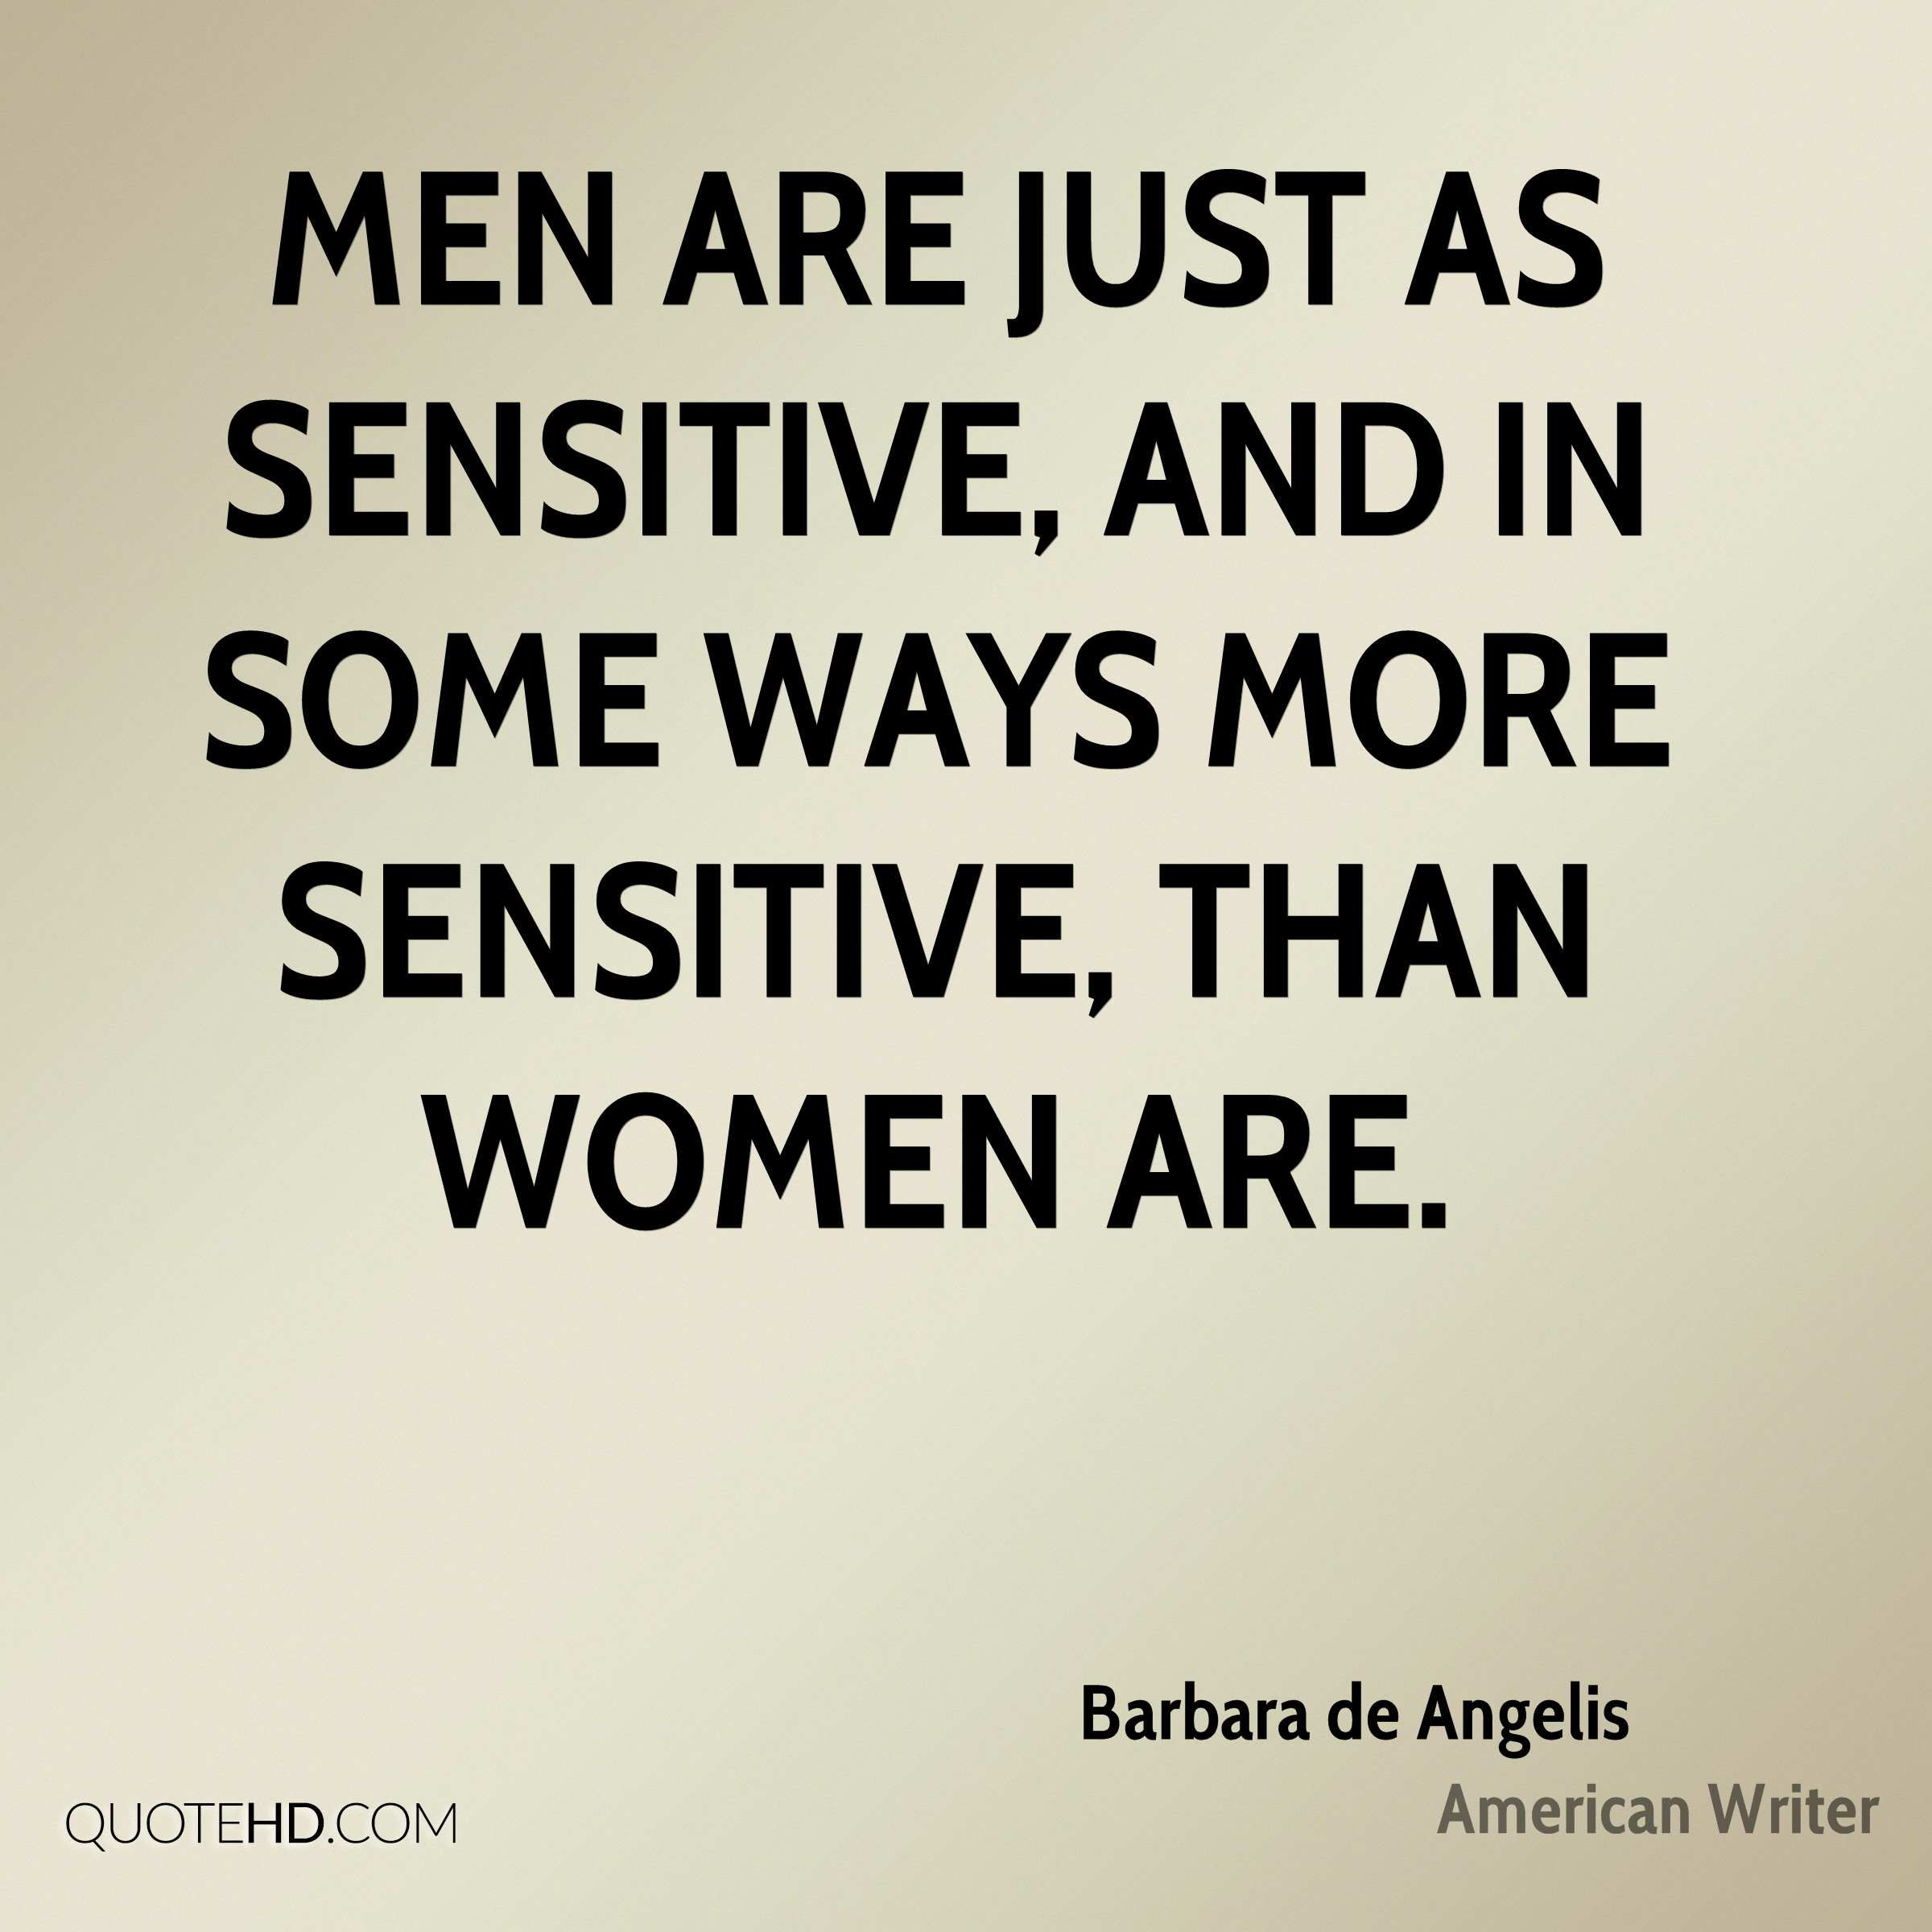 barbara-de-angelis-barbara-de-angelis-men-are-just-as-sensitive-and